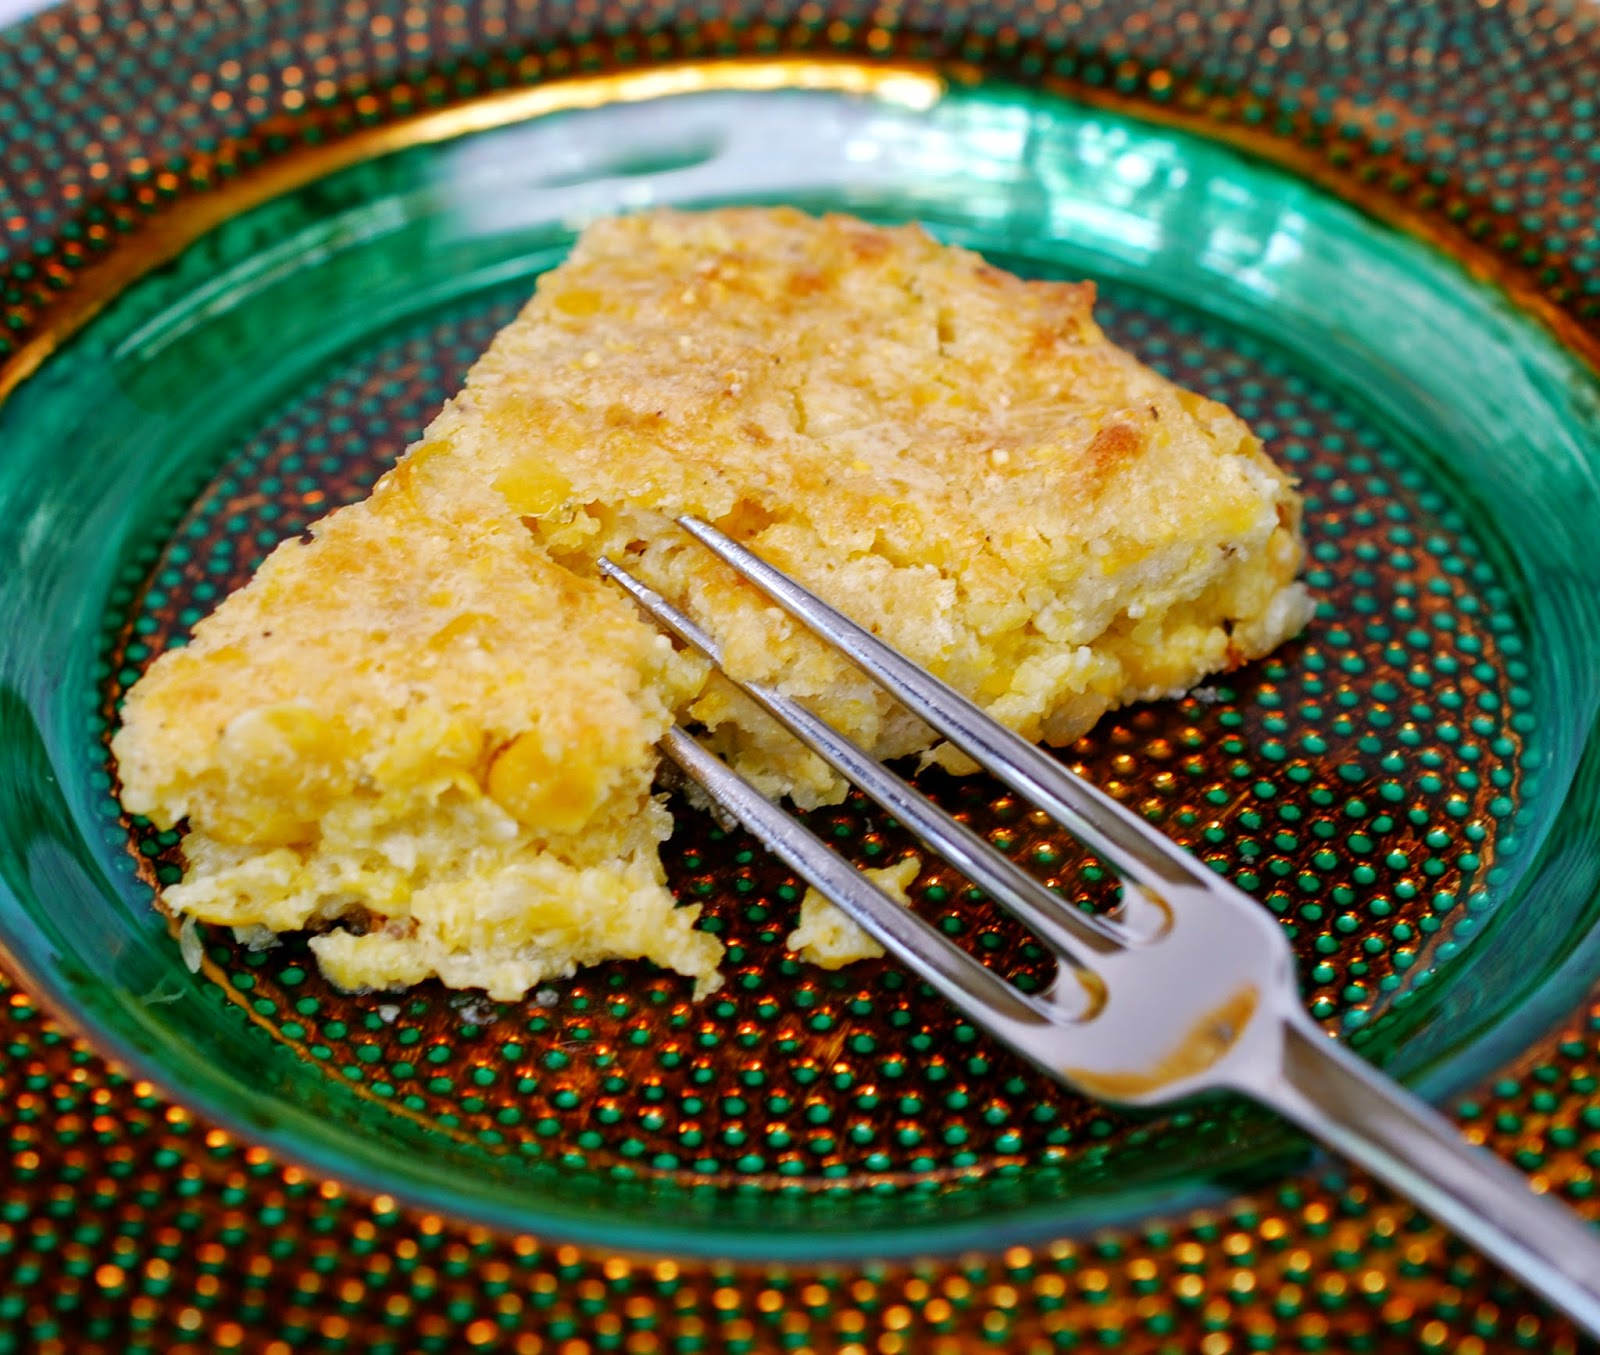 Cooking with Larue: Sweet Corn Bread Pudding